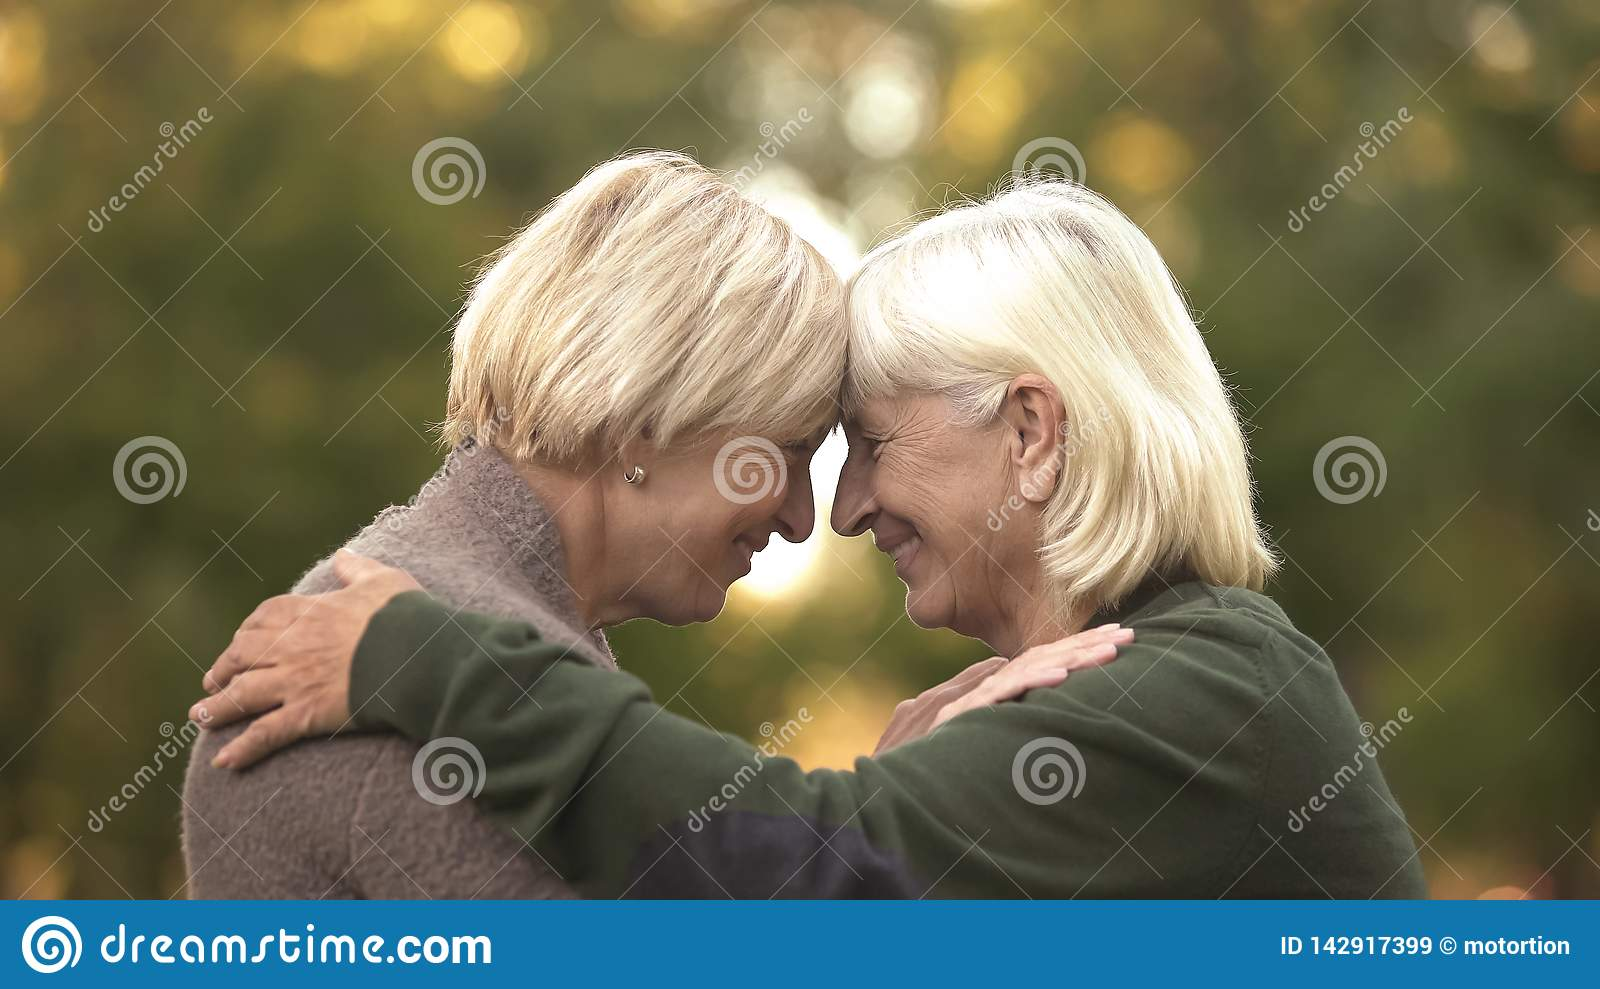 Two mature female friends tightly hugging each other and smiling, happy meeting